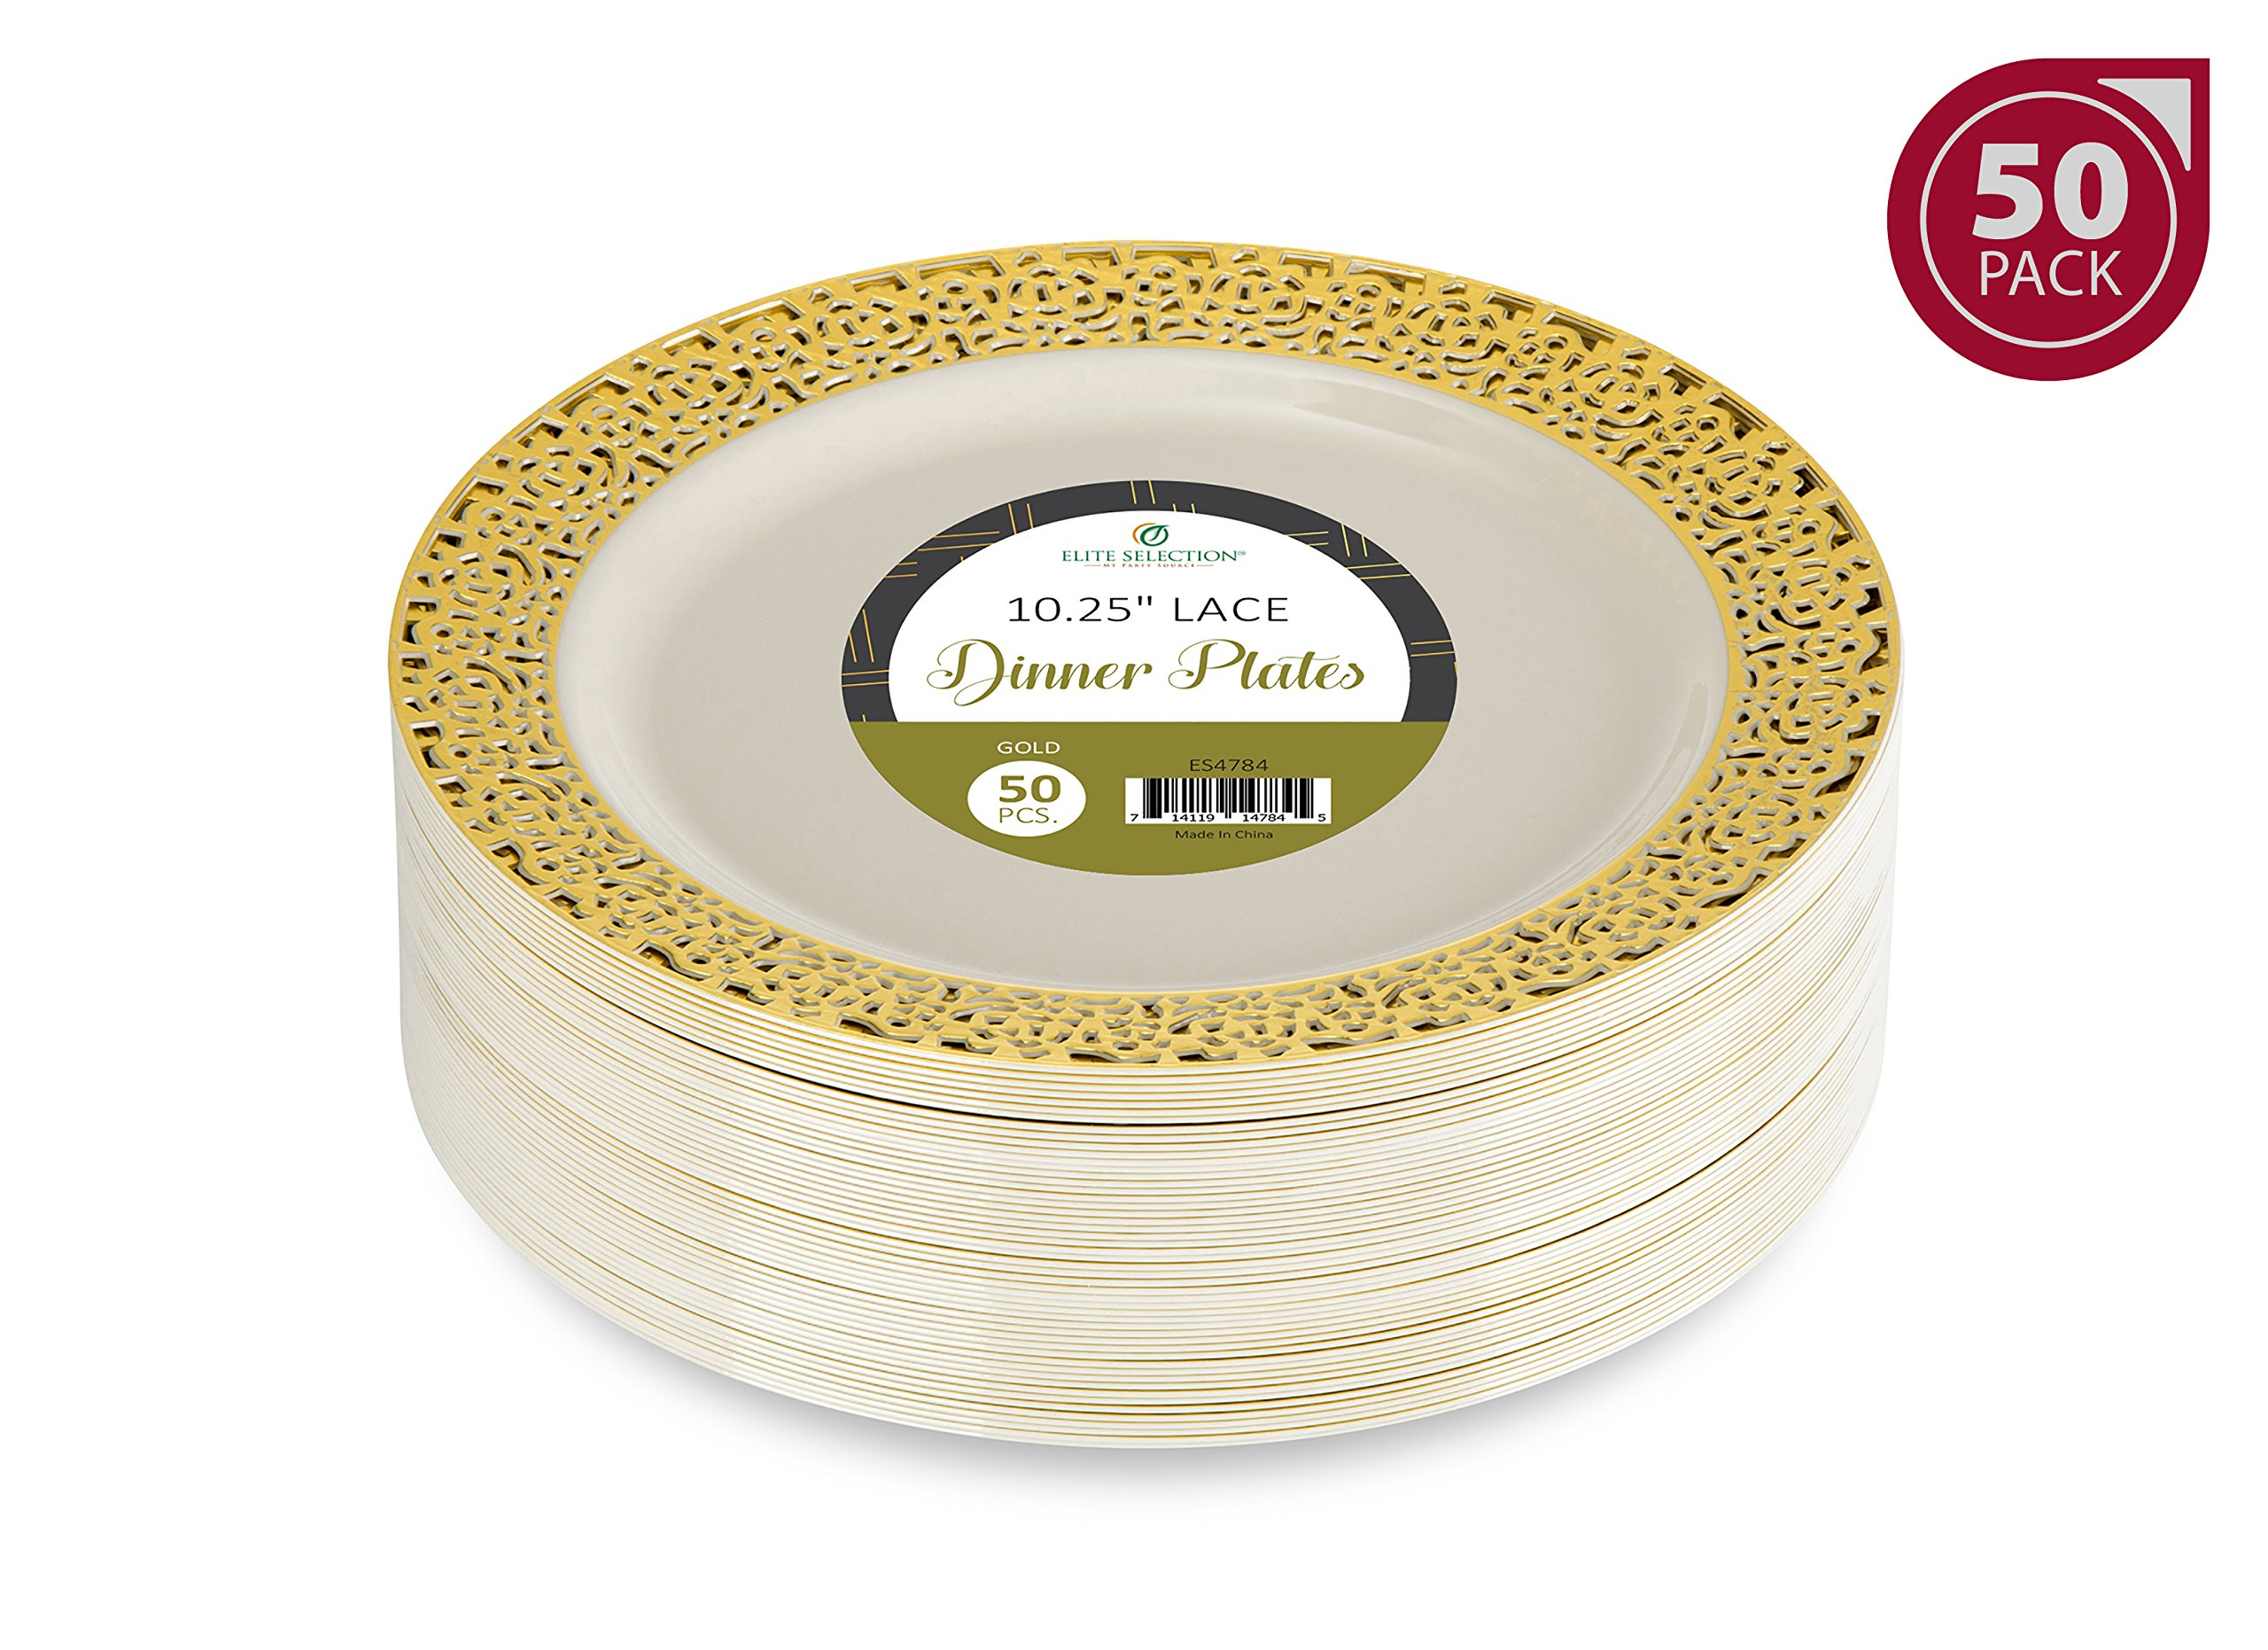 Elite Selection Pack Of 50 Dinner Disposable Plastic Plates Ivory Color With Gold Lace Rim 10.25 Inch